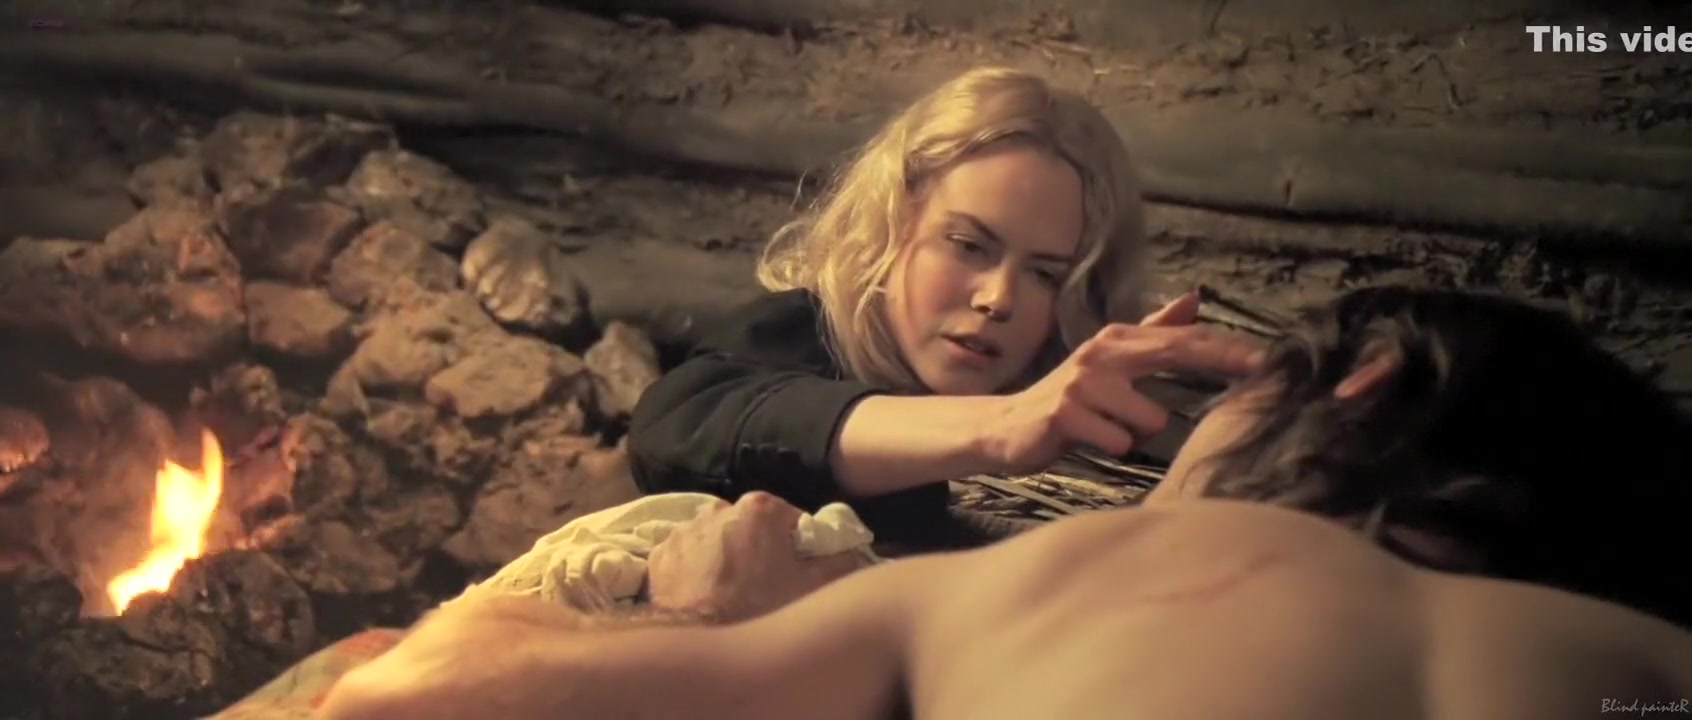 Cold Mountain (2003) Nicole Kidman Www oldhairypussy com